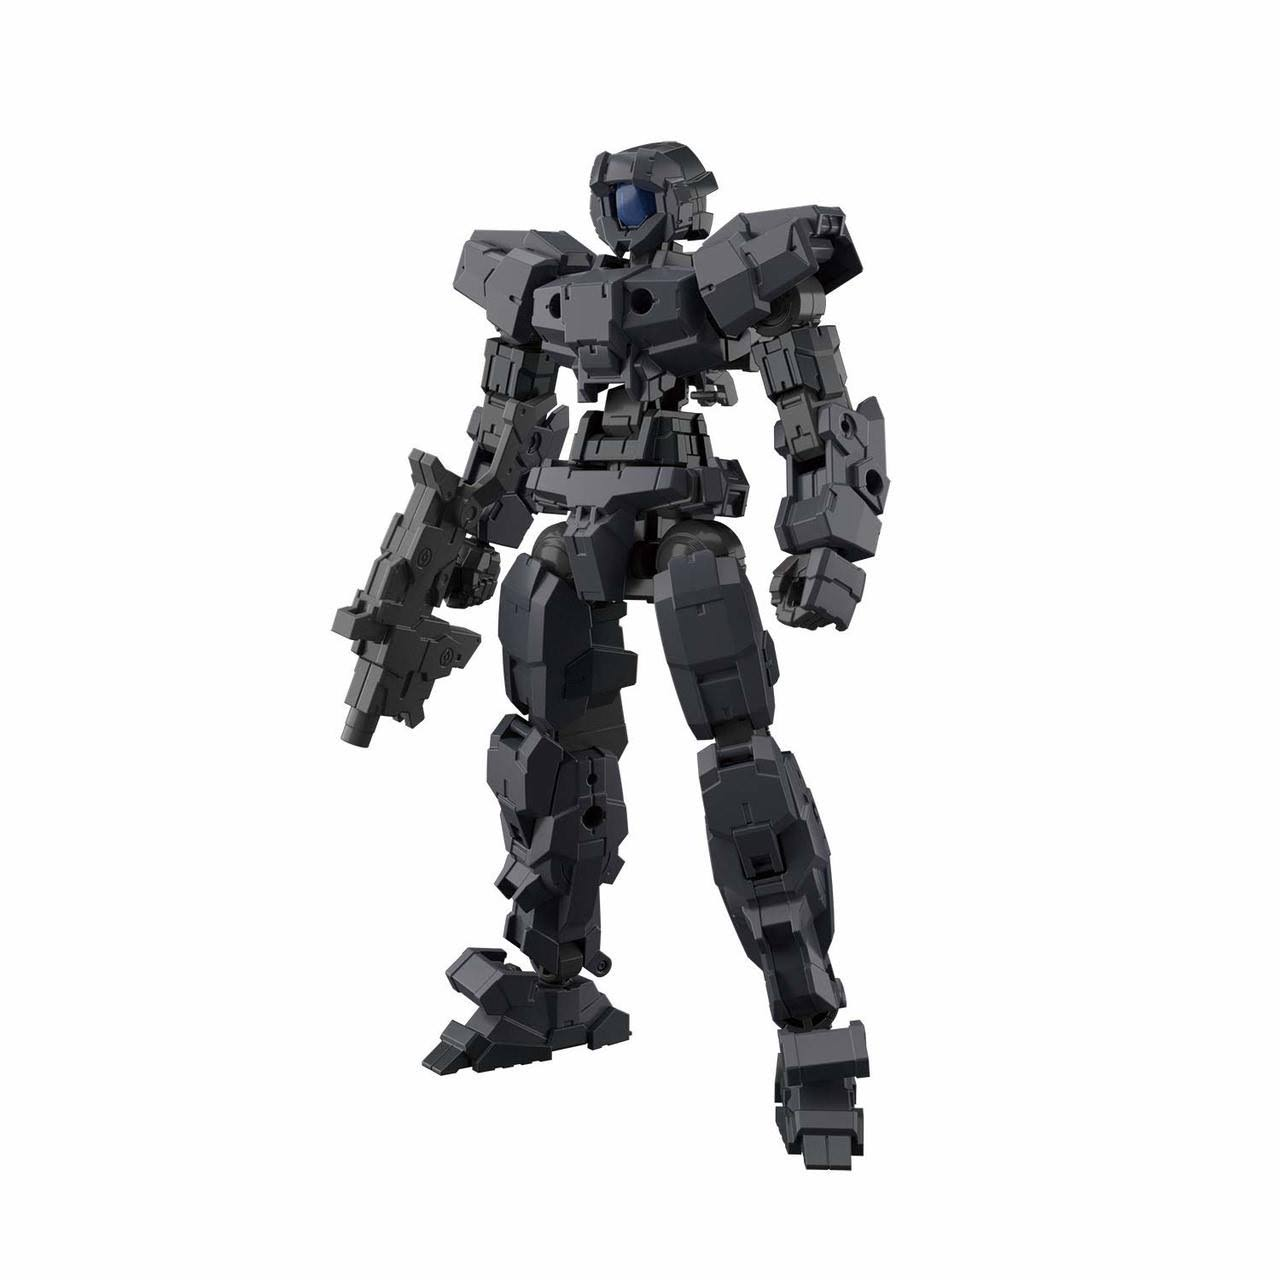 Bandai 30 Minute Missions EEMX-17 Alto Dark Gray Model Kit - Scale 1:144